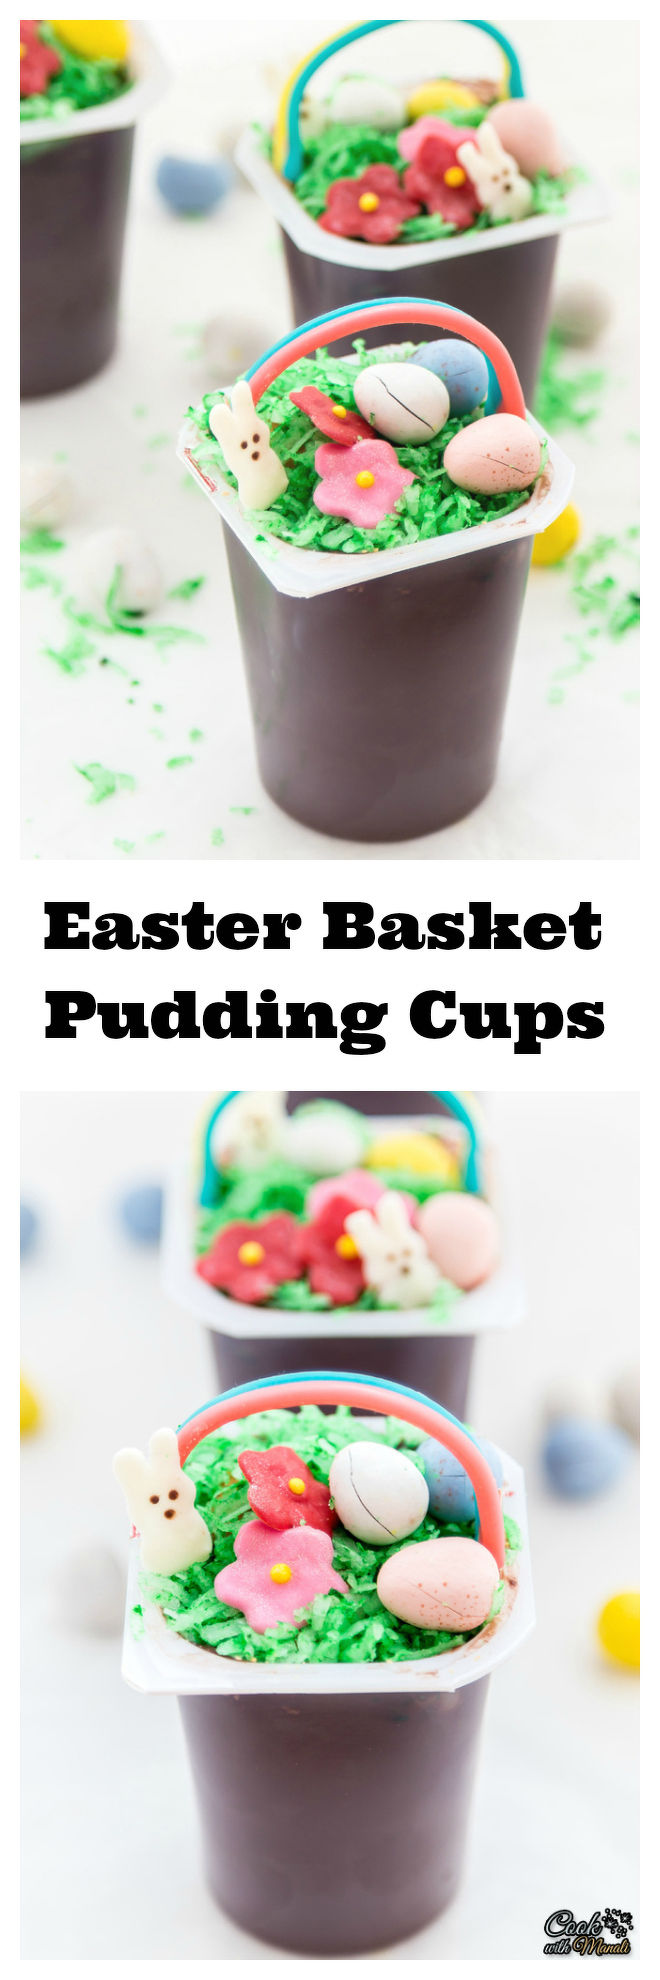 Easter Basket Pudding Cups Collage-nocwm